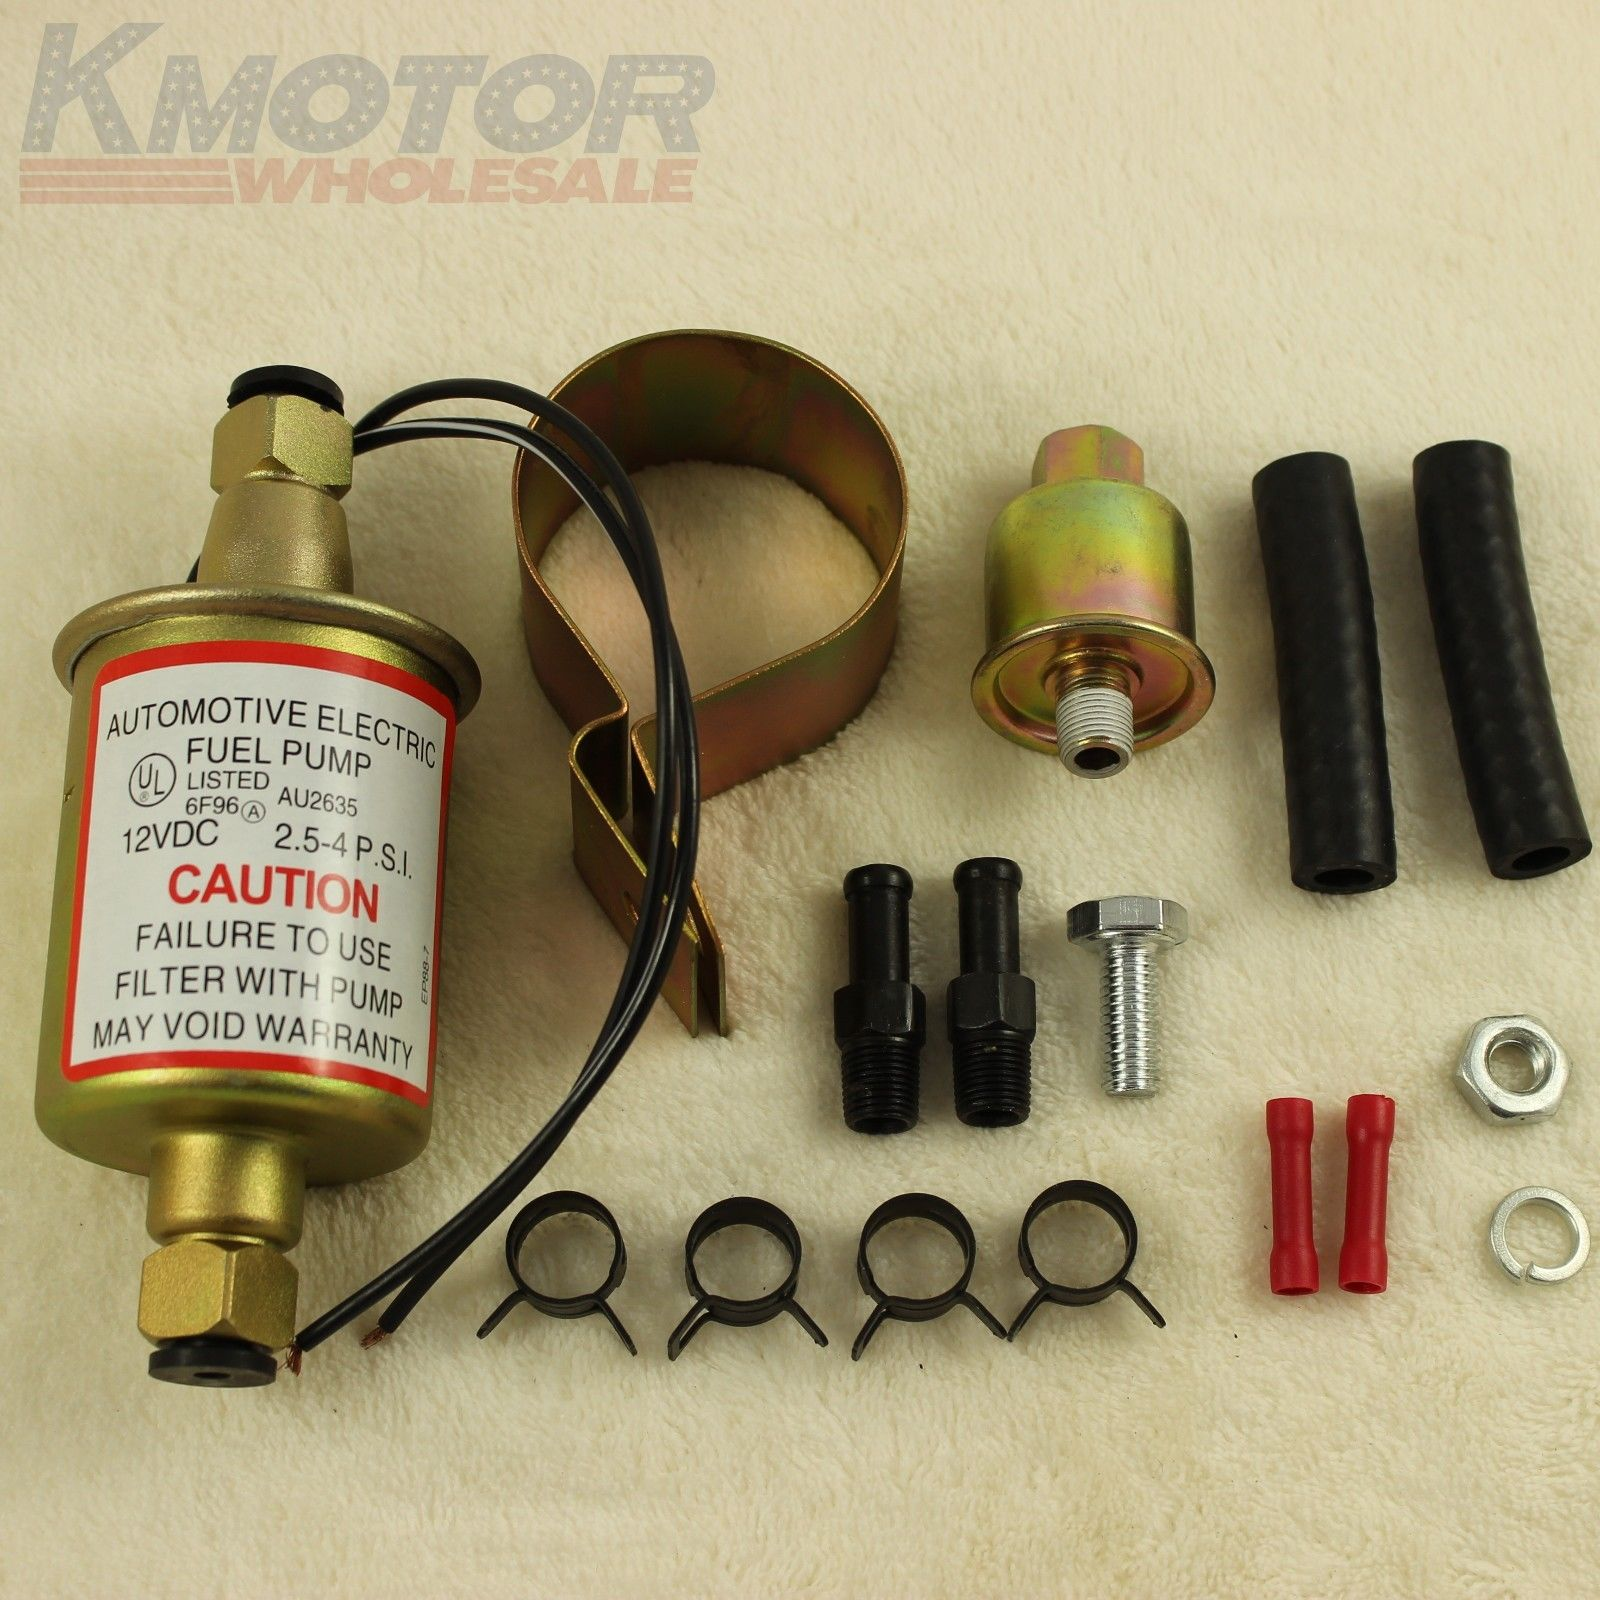 Click image for larger version  Name:fuel pump.jpg Views:88 Size:306.7 KB ID:168855